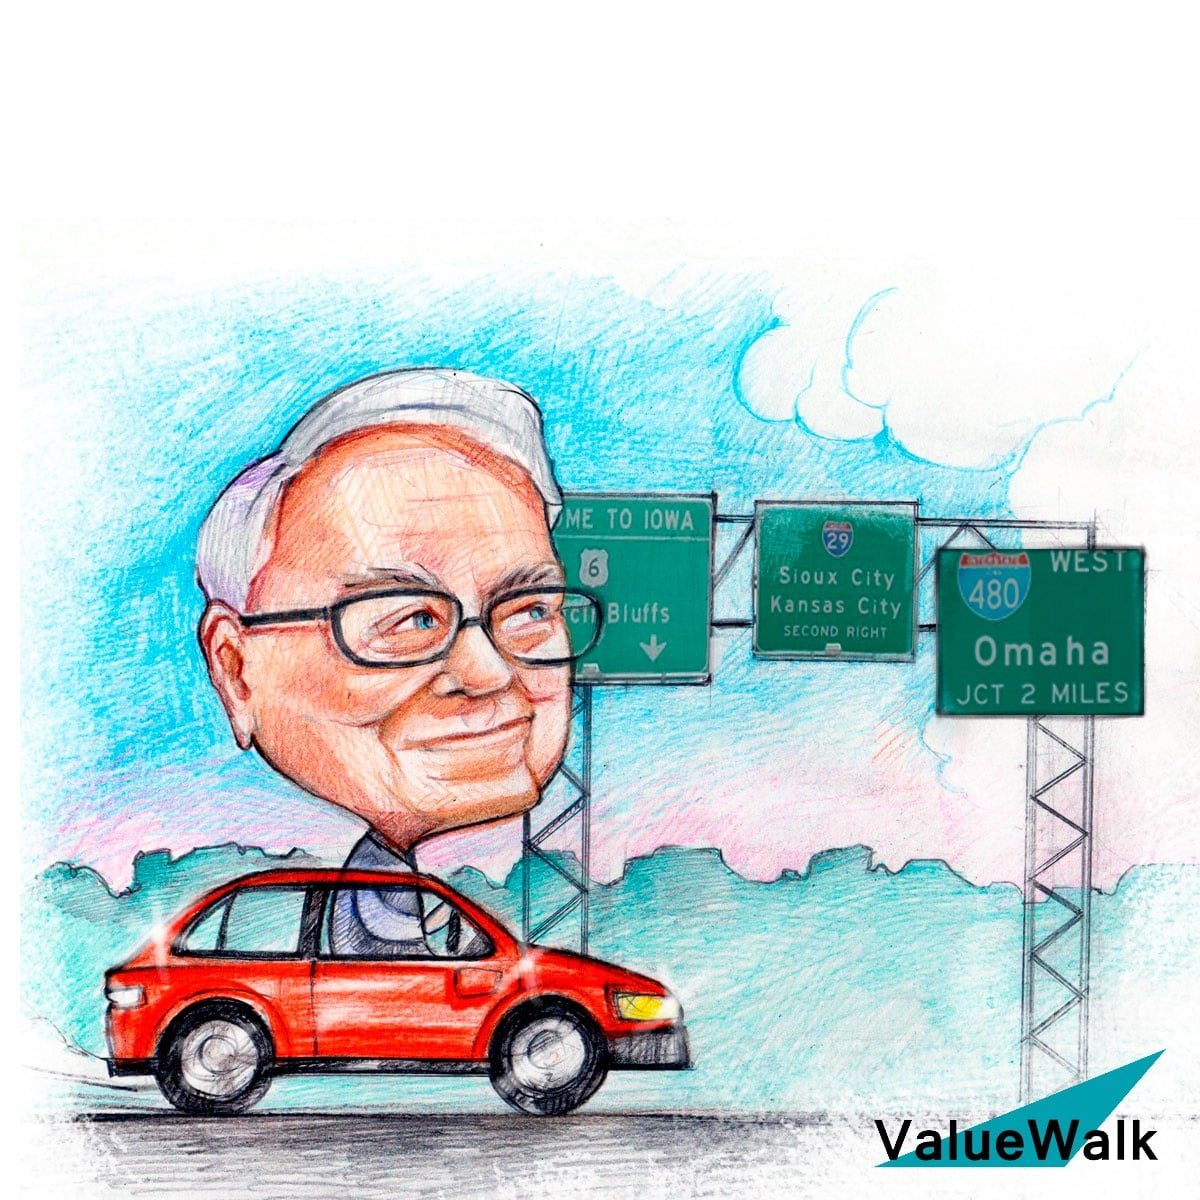 Berkshire Hathaway's Future Warren Buffett coronavirus Billionaire Investor Warren Buffett Berkshire Hathaway chairman and CEO Warren Buffett interview NASDAQ:AAPL shares of apple warren buffett index funds Warren Buffett estimate of intrinsic value